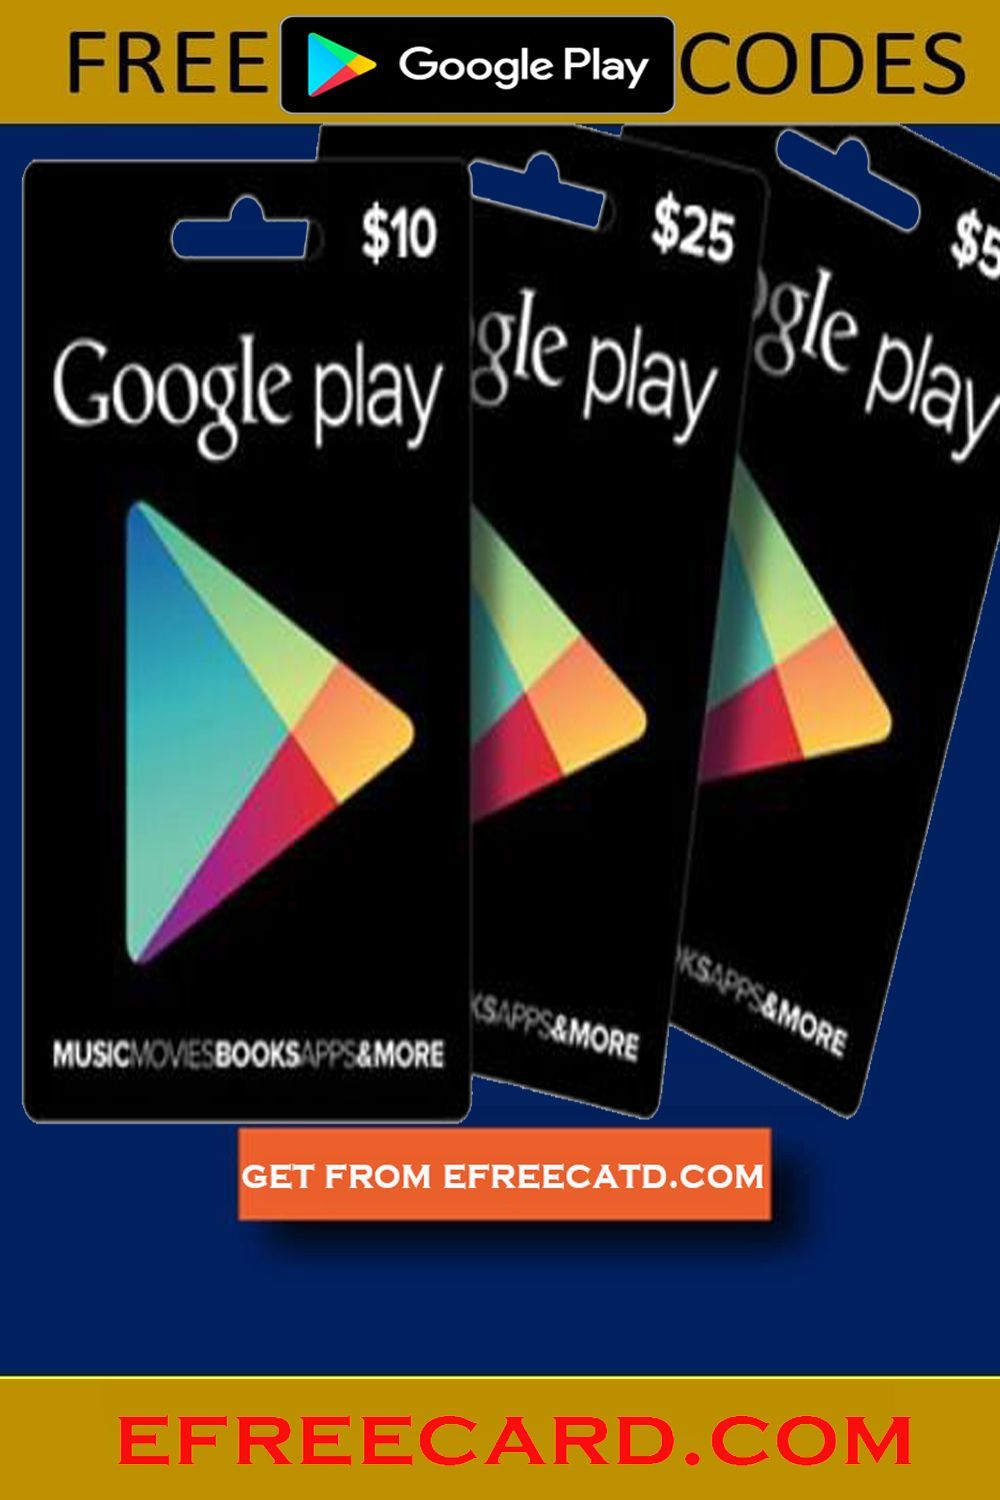 How to Get Redeem Code for Playstore 2020 Win Playstore